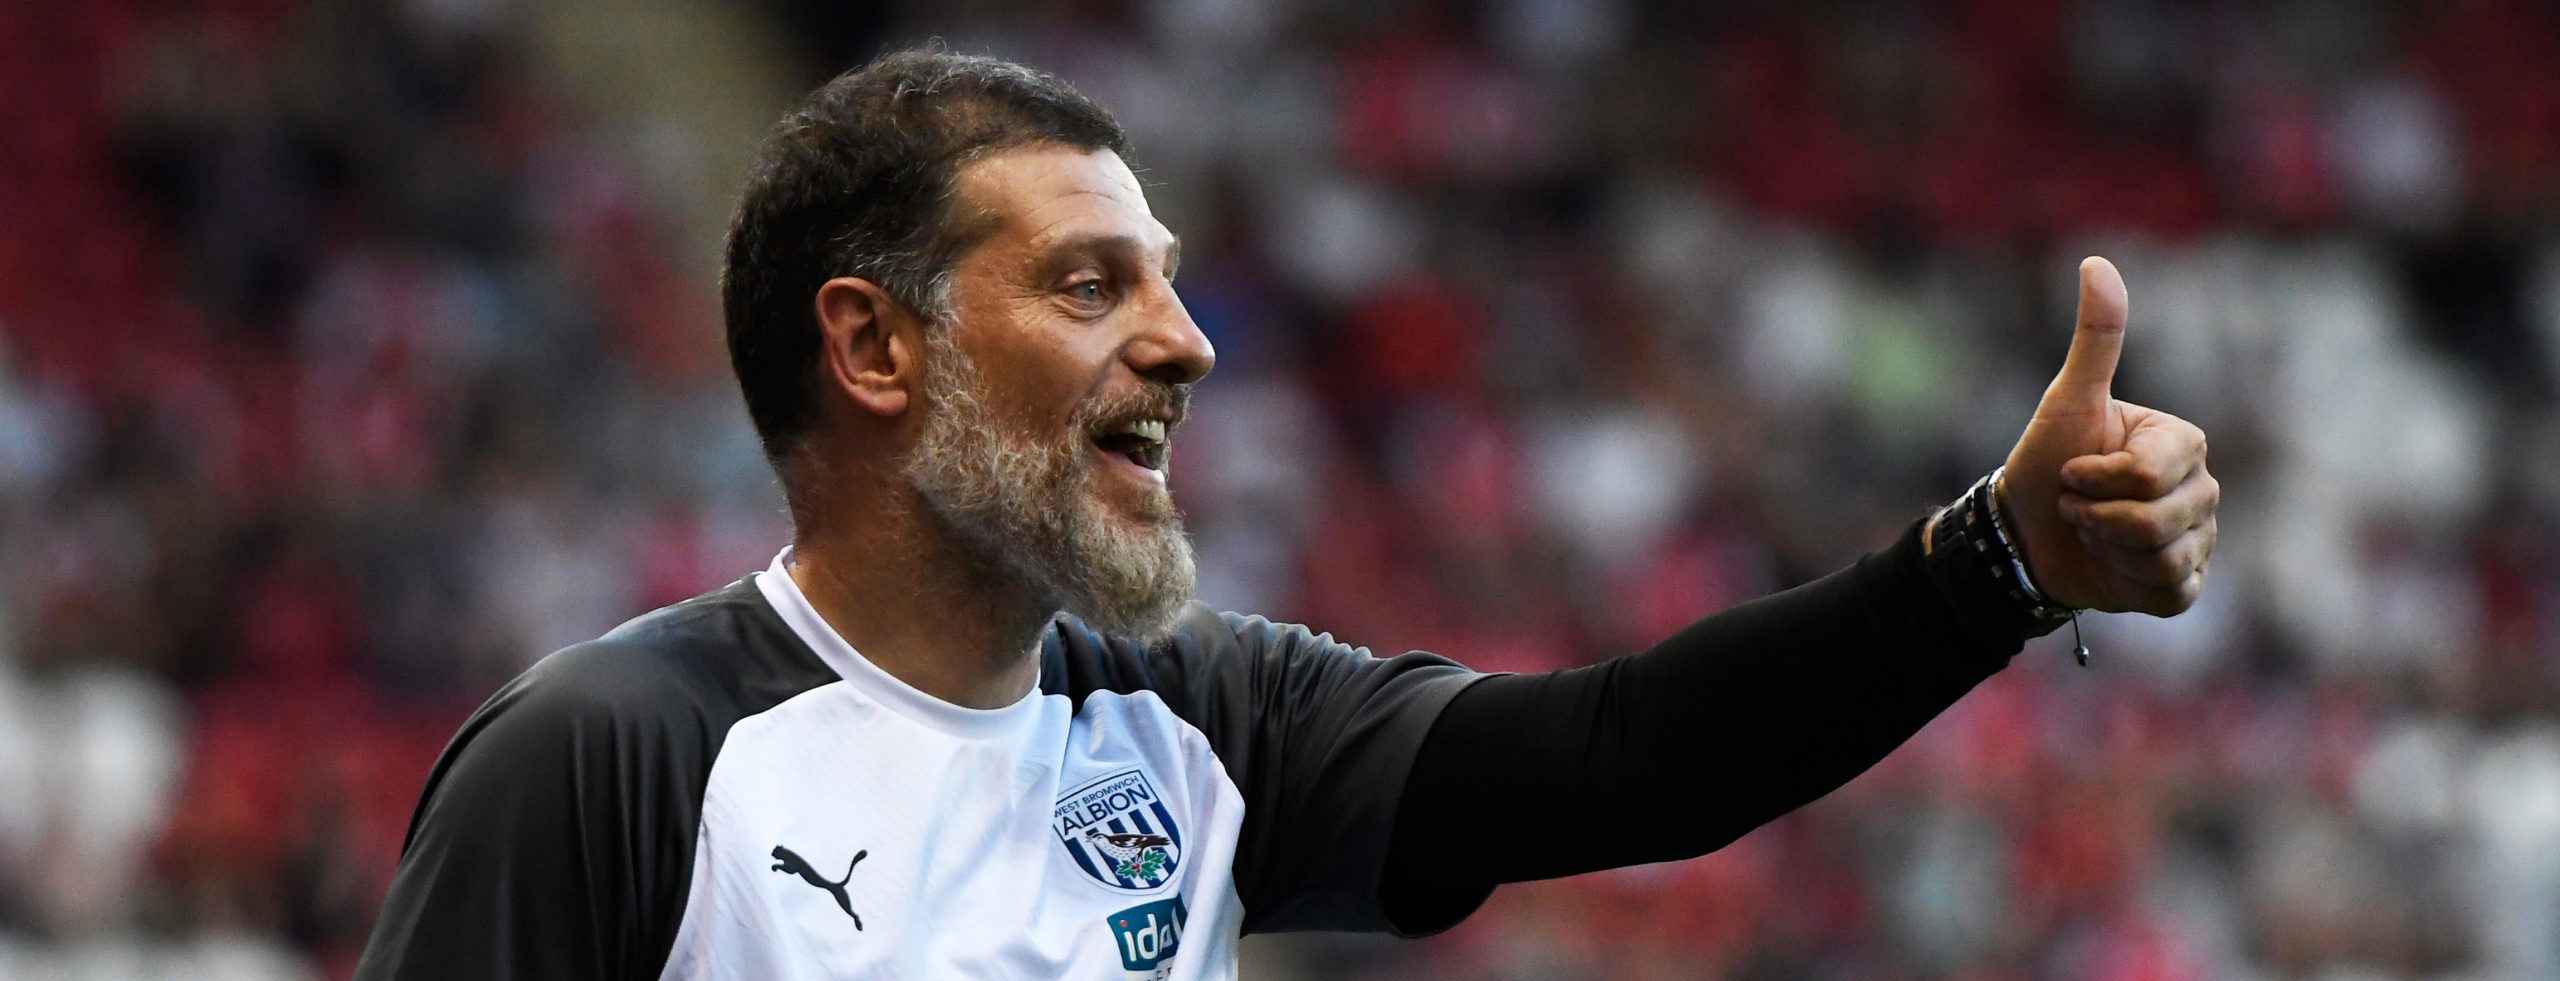 Newcastle Vs West Brom Prediction Betting Tips Odds 12 12 20 Bwin